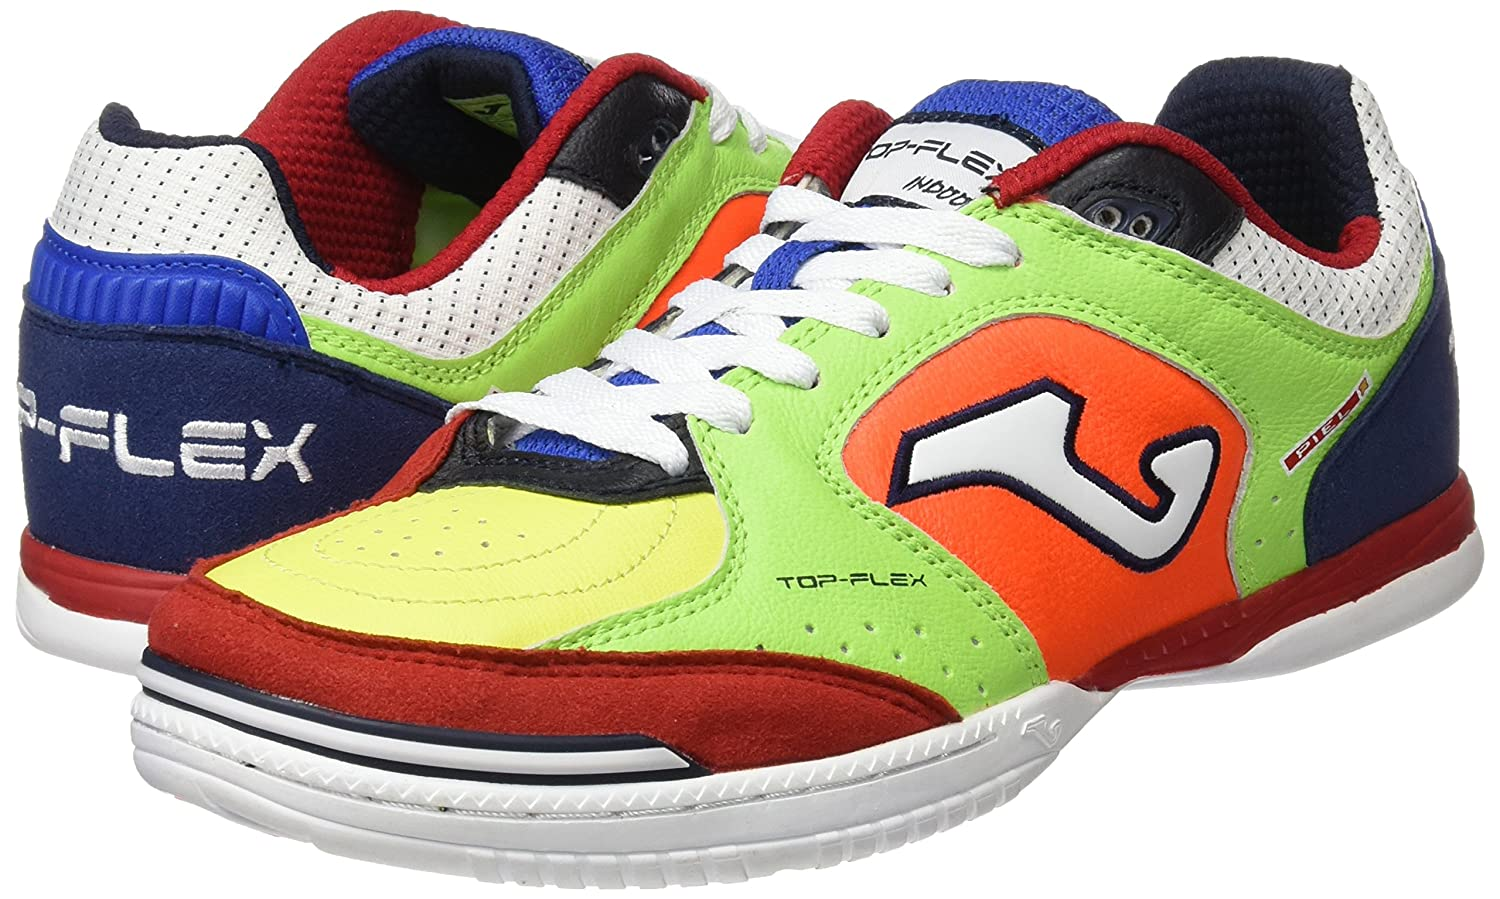 Joma TOPS.726.IN - Zapatillas para hombre, color Multicolor (Phosphor Marineblau), talla 44 EU